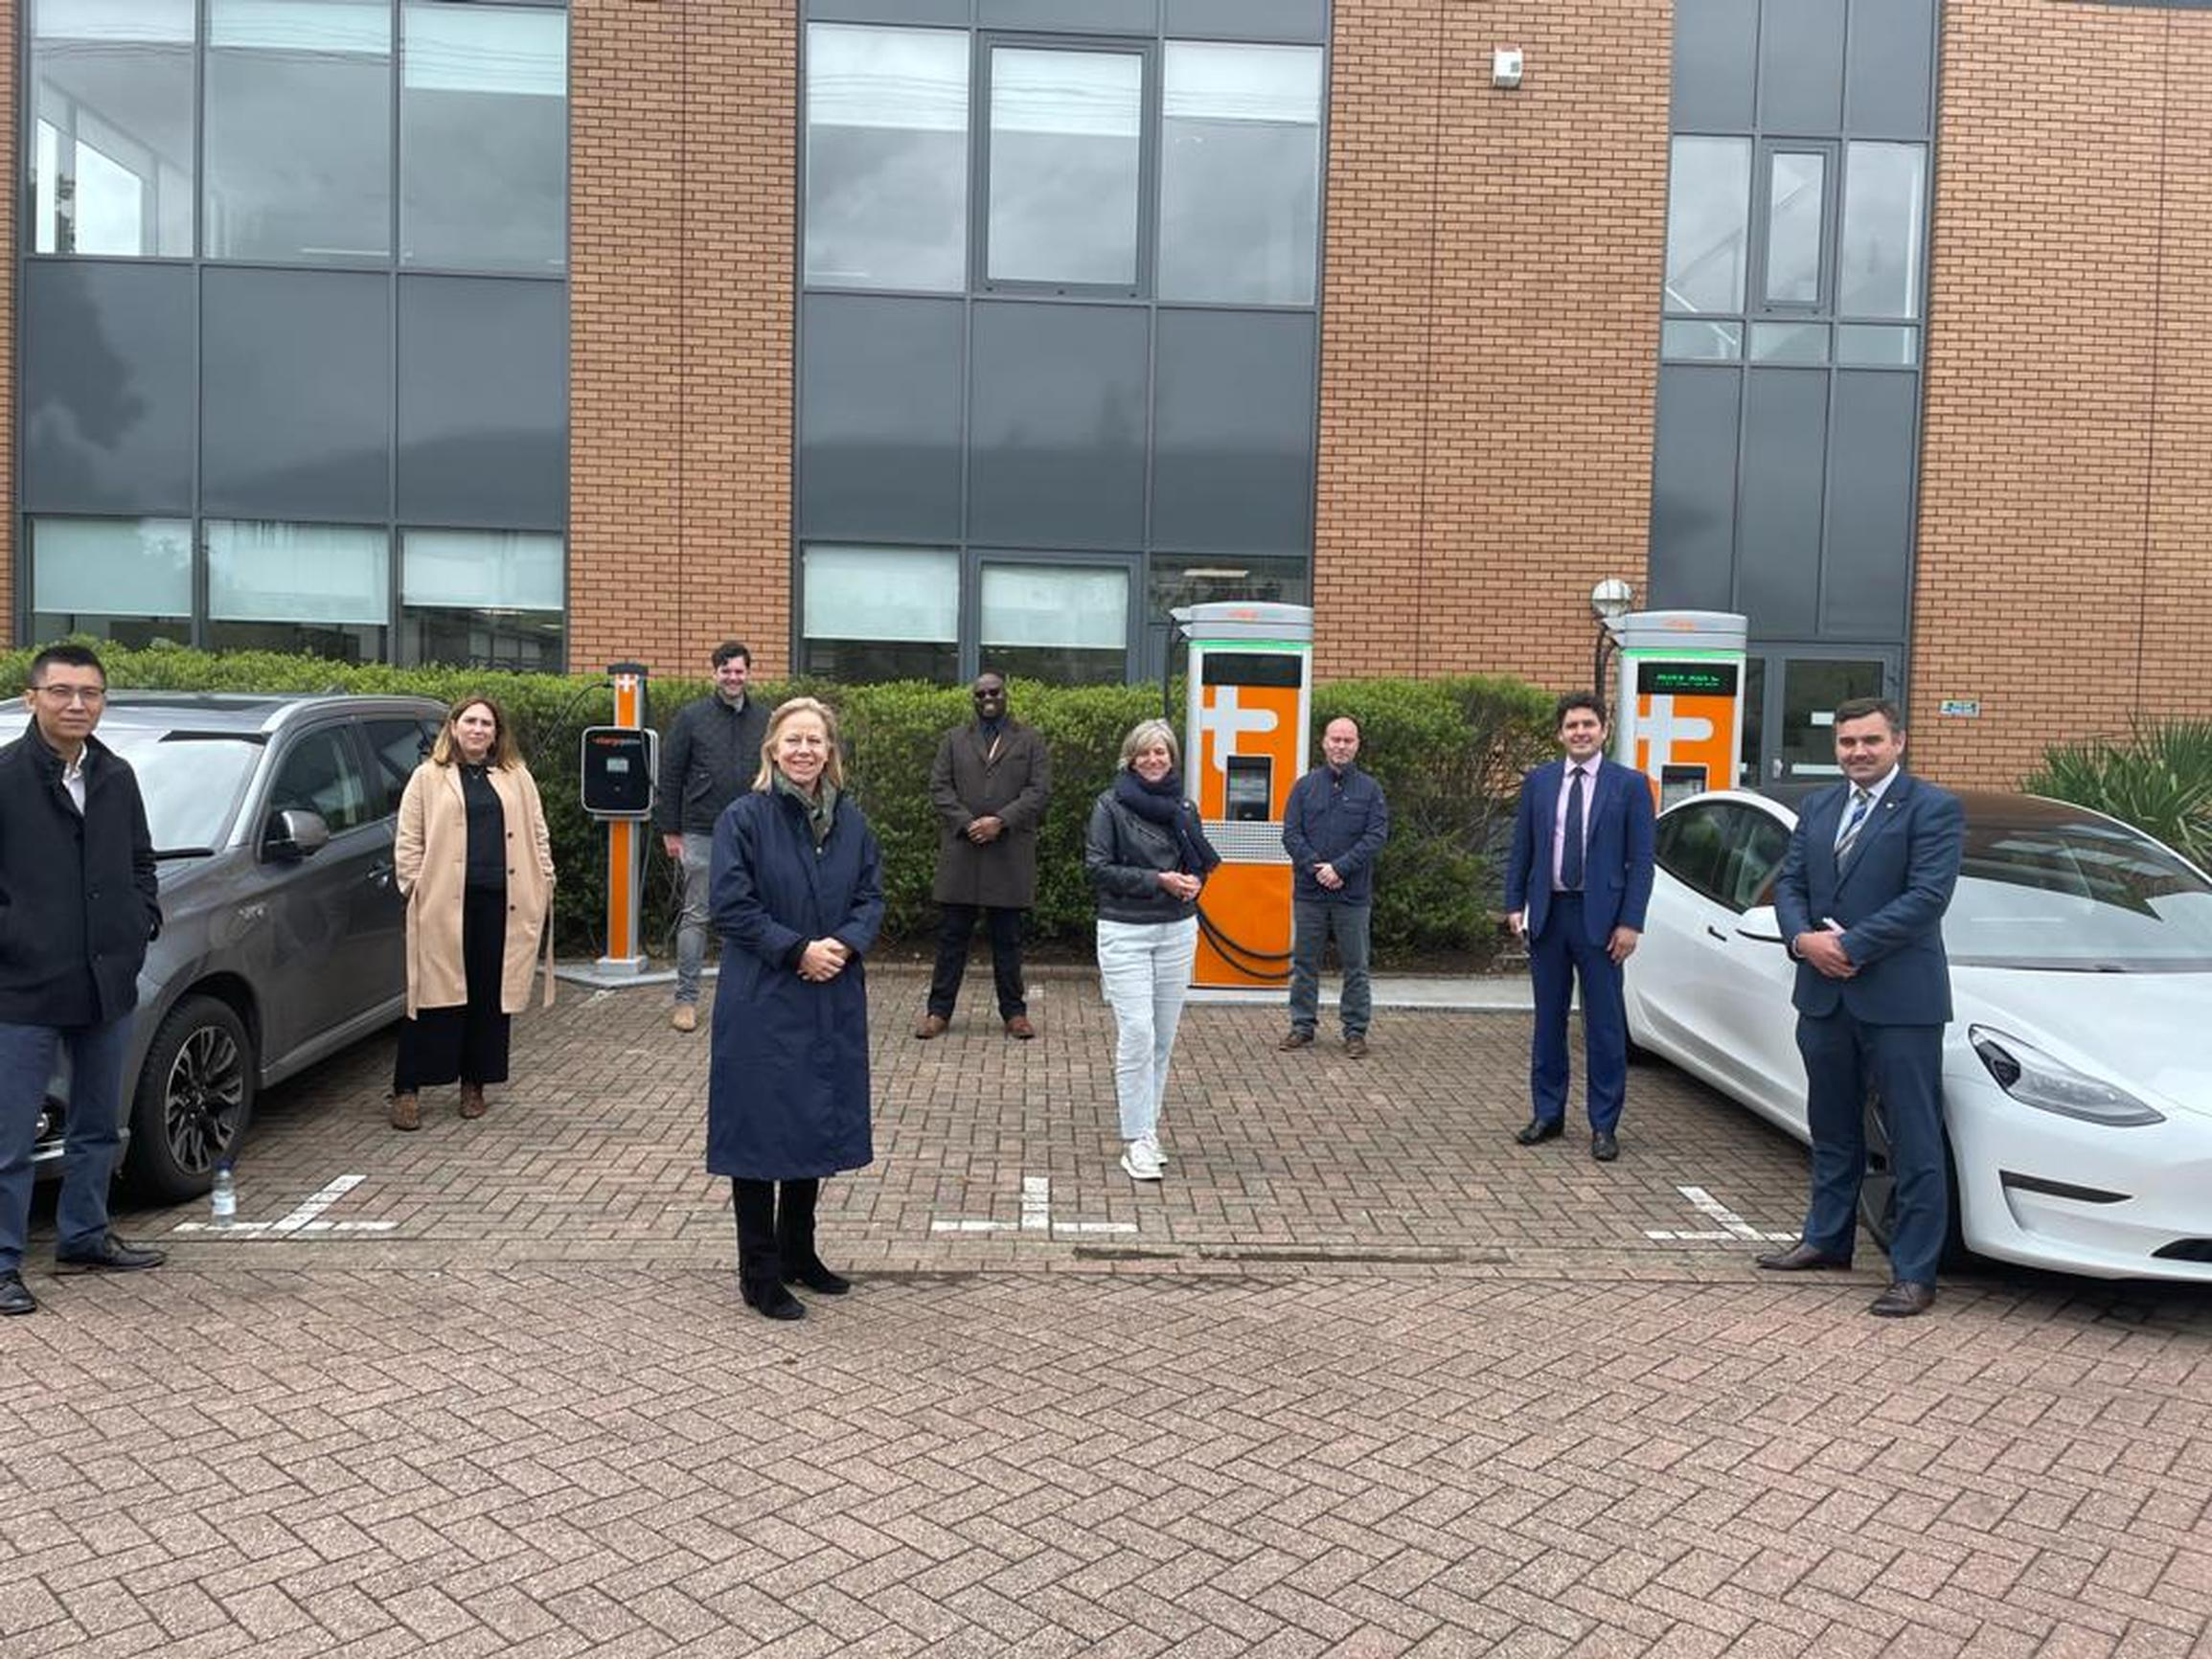 Members of the Transport Committee inspecting EV charging facilities in Reading on 20 May